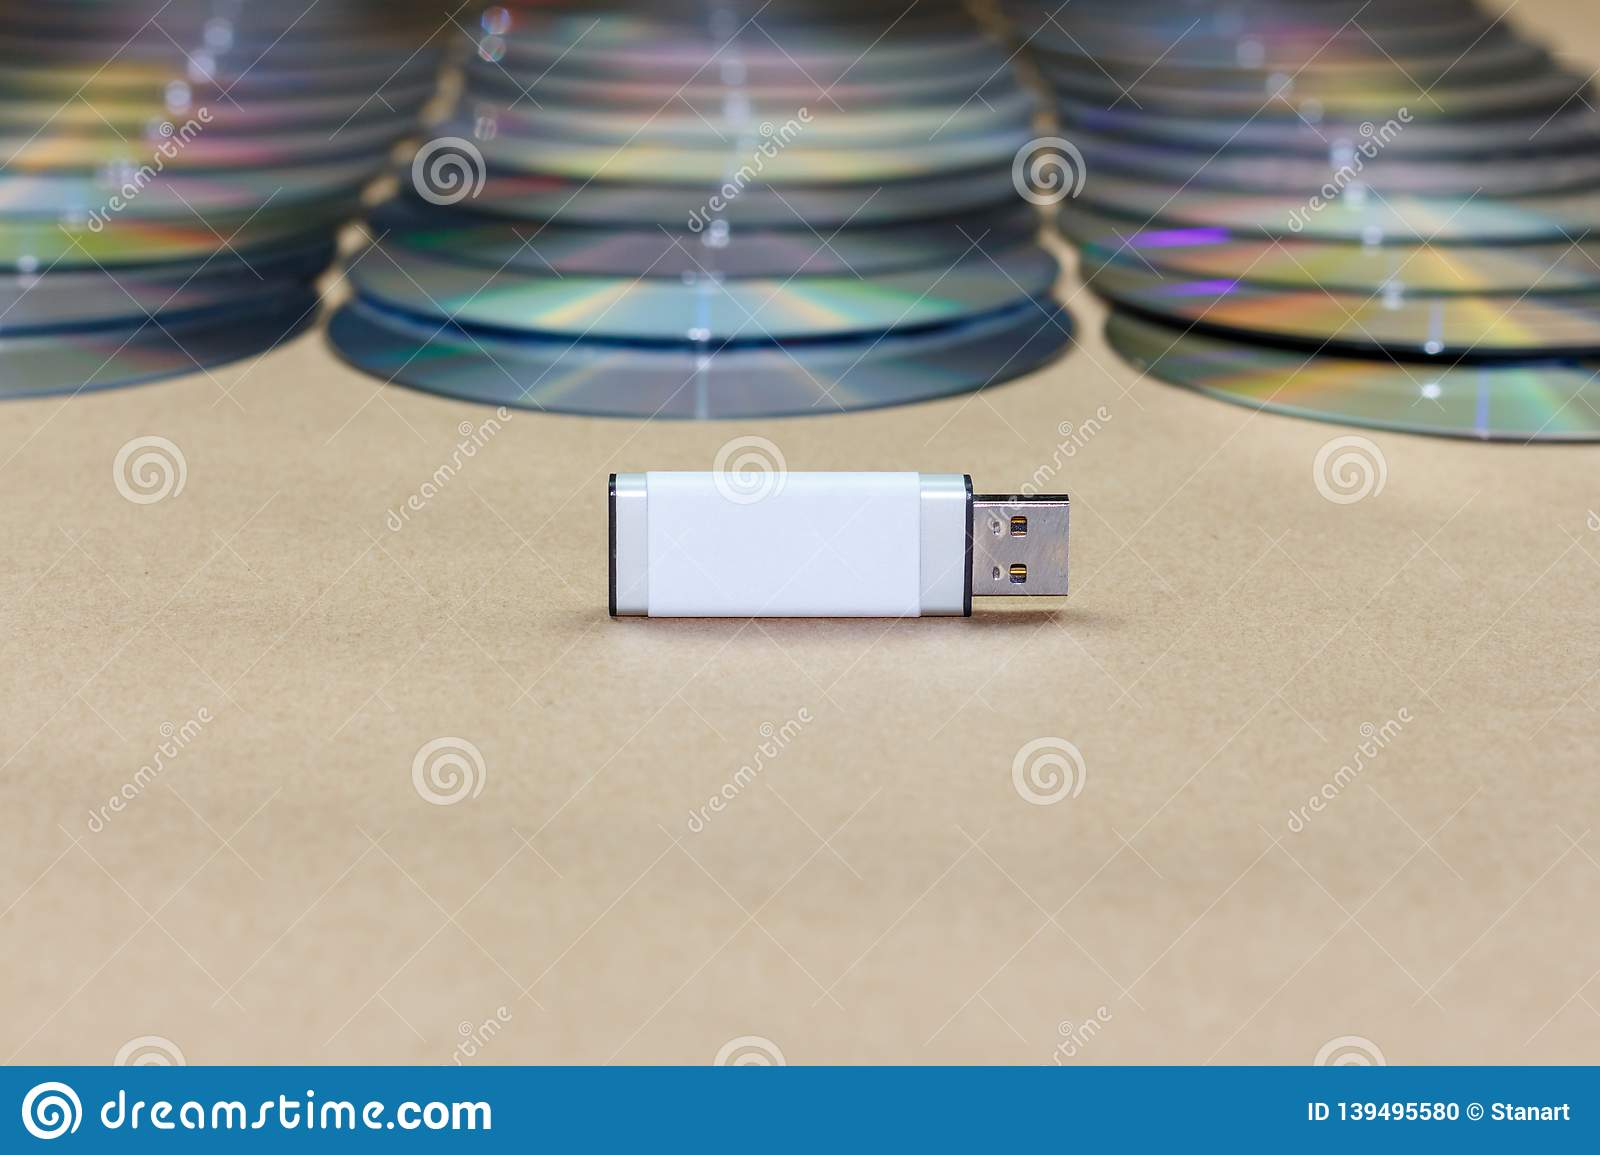 USB Universal Serial Bus Stick In Front On A Stack Of Cd Compact